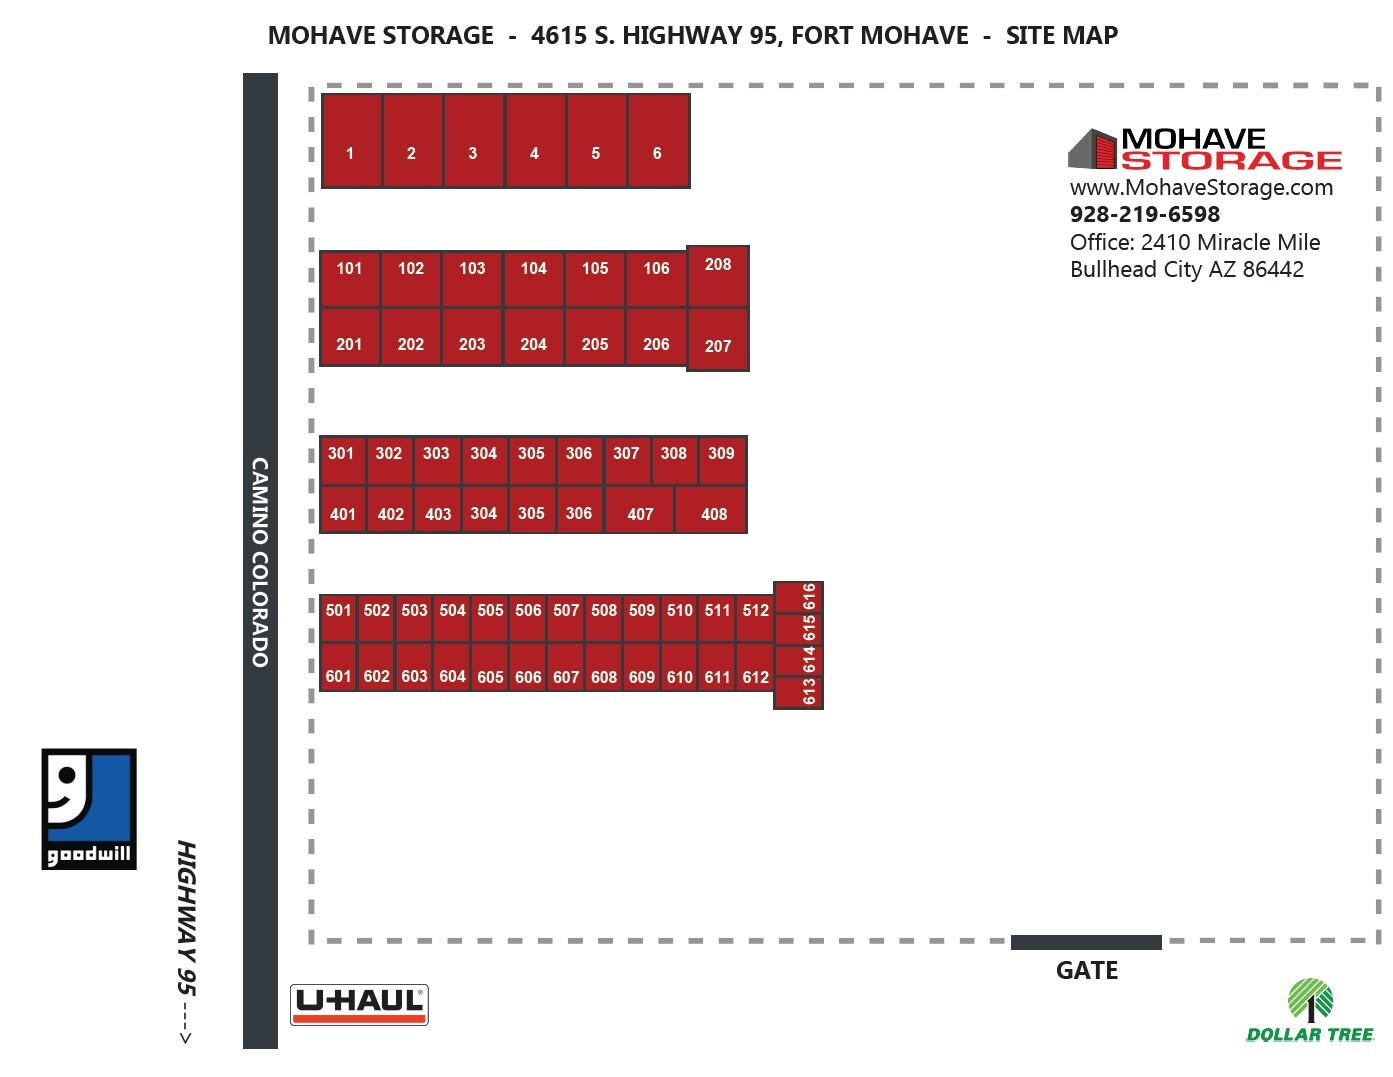 Site Map 4615 S Hwy 95 Camino Colorado Fort Mohave Site Map Prospective Tenants Mohave Storage Uhaul